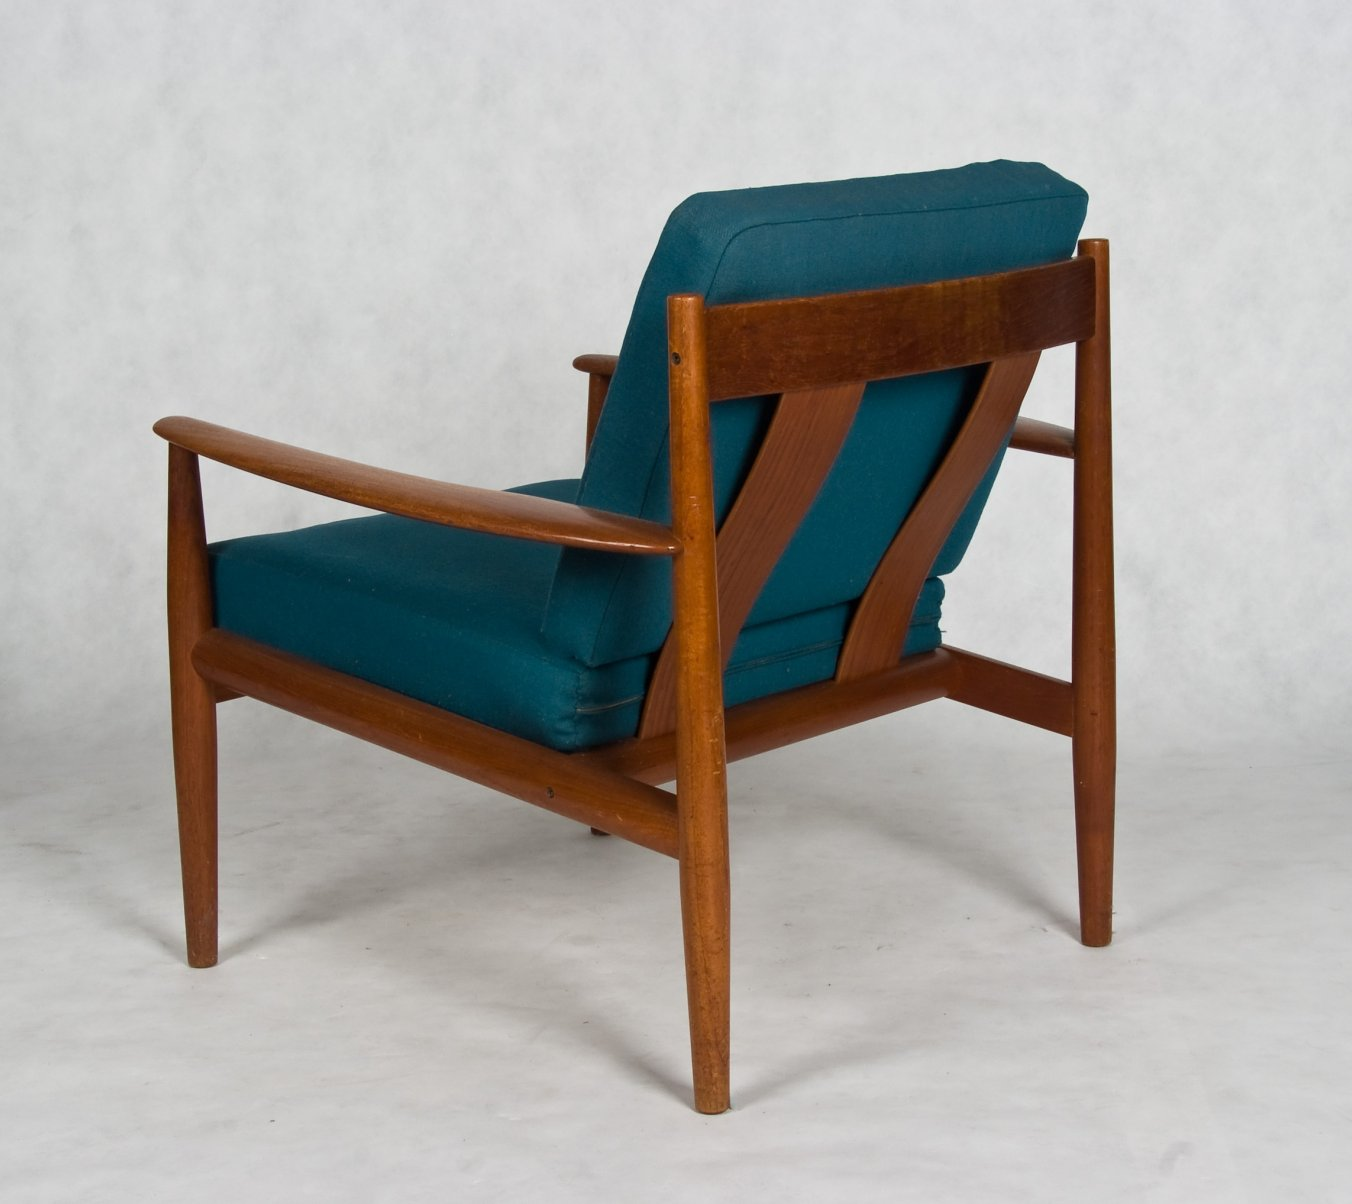 Danish arm chair with teak frame - designed by Grete Jalk